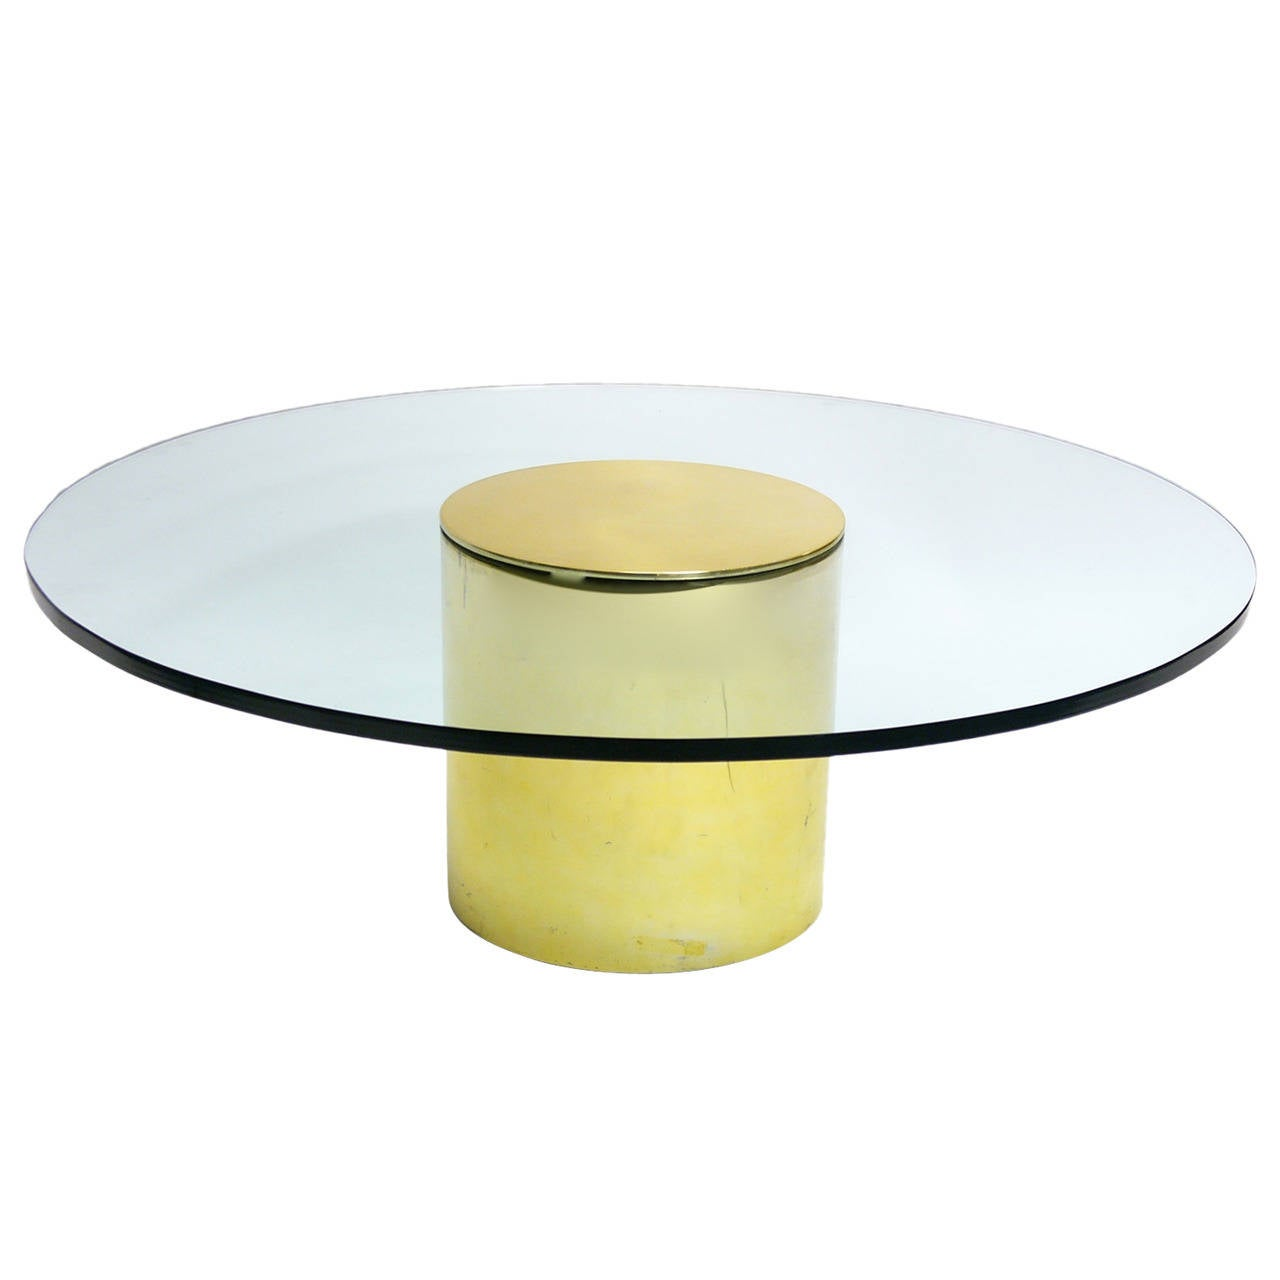 Paul mayen for habitat brass and glass coffee table at 1stdibs for Coffee tables habitat